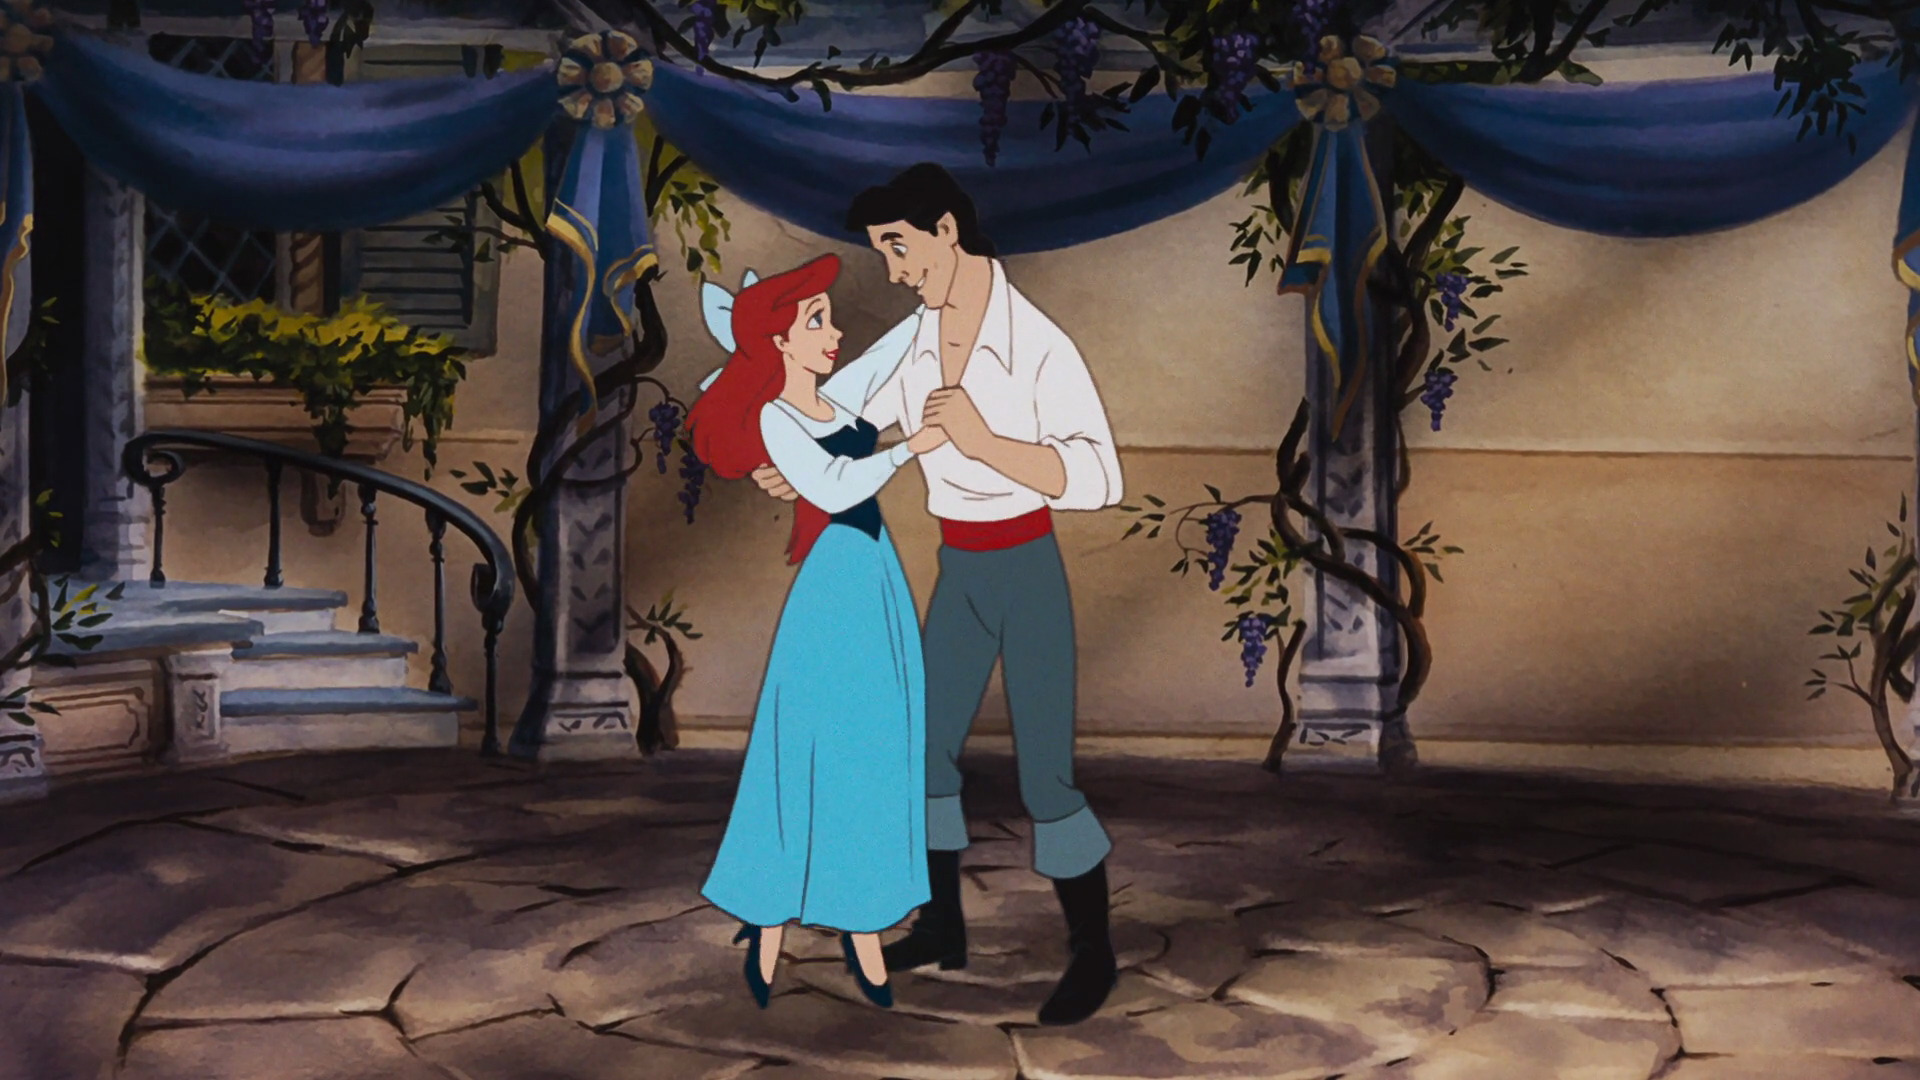 Image Gallery of Princess Ariel And Prince Eric Dancing